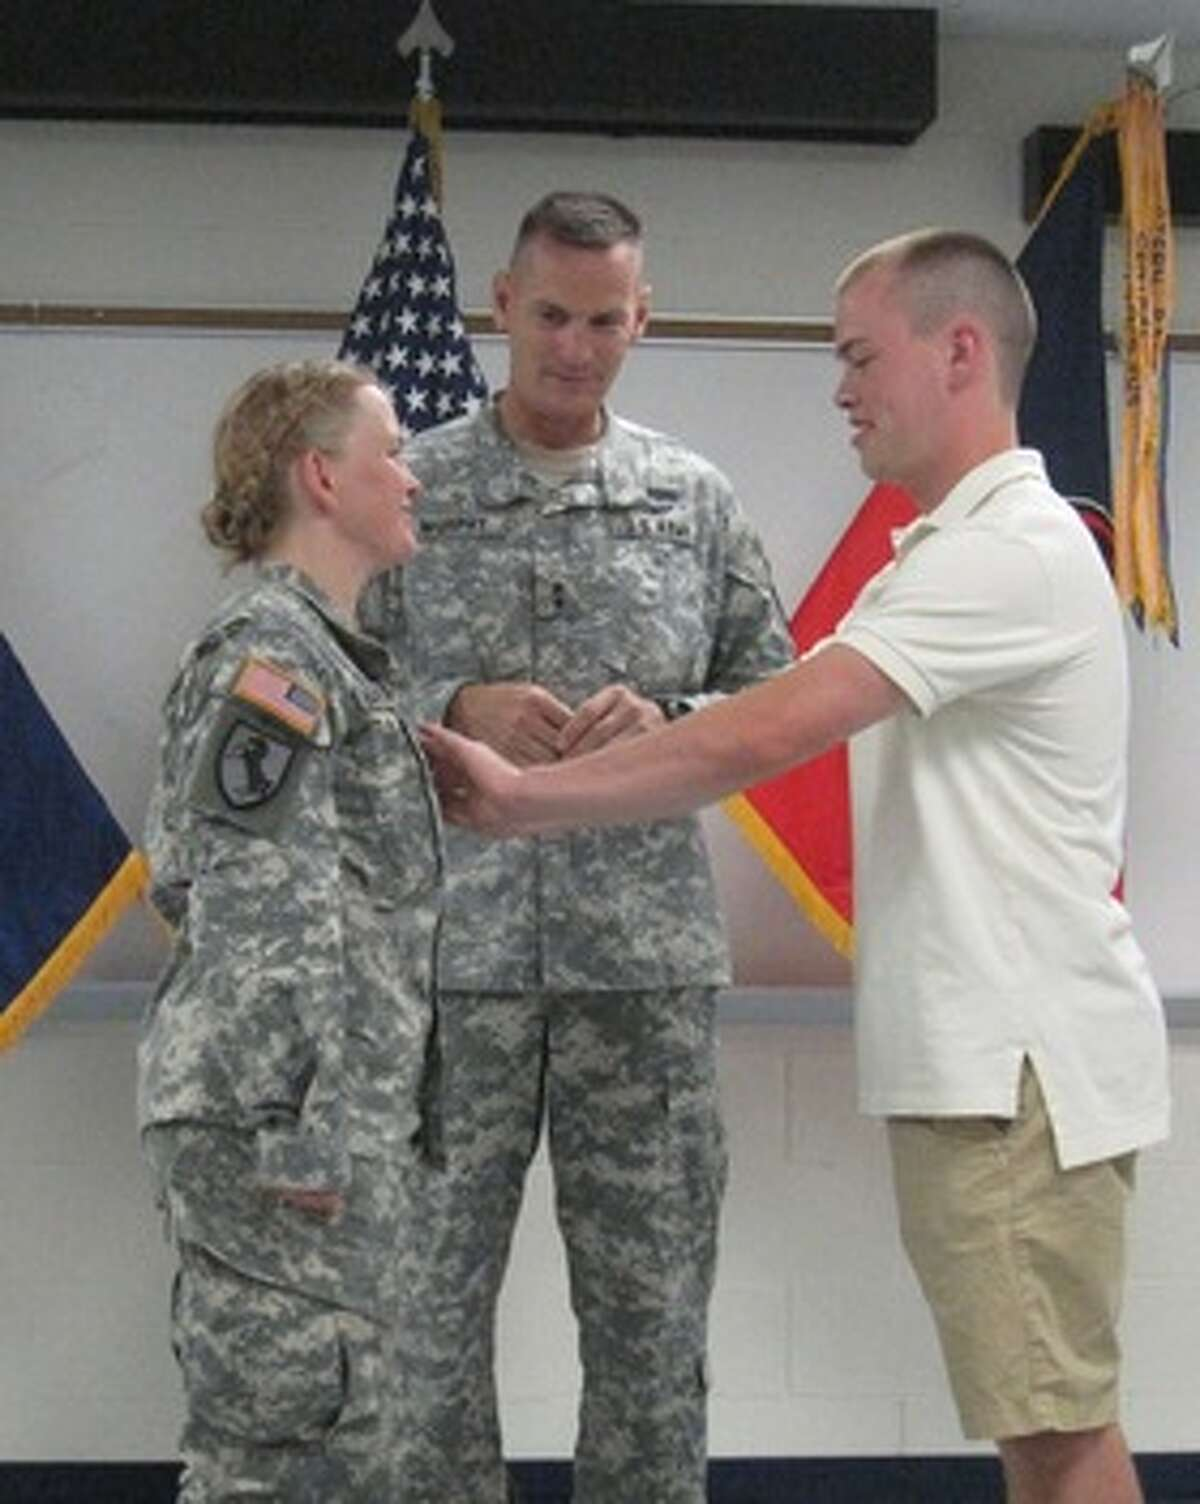 KIM DEAL Maj. General Patrick Murphy, adjutant general of New York, looks on as Col. Tammy Mandwelle?s son Jordan Mandwelle puts her new rank in place during a ceremony in Syracuse.